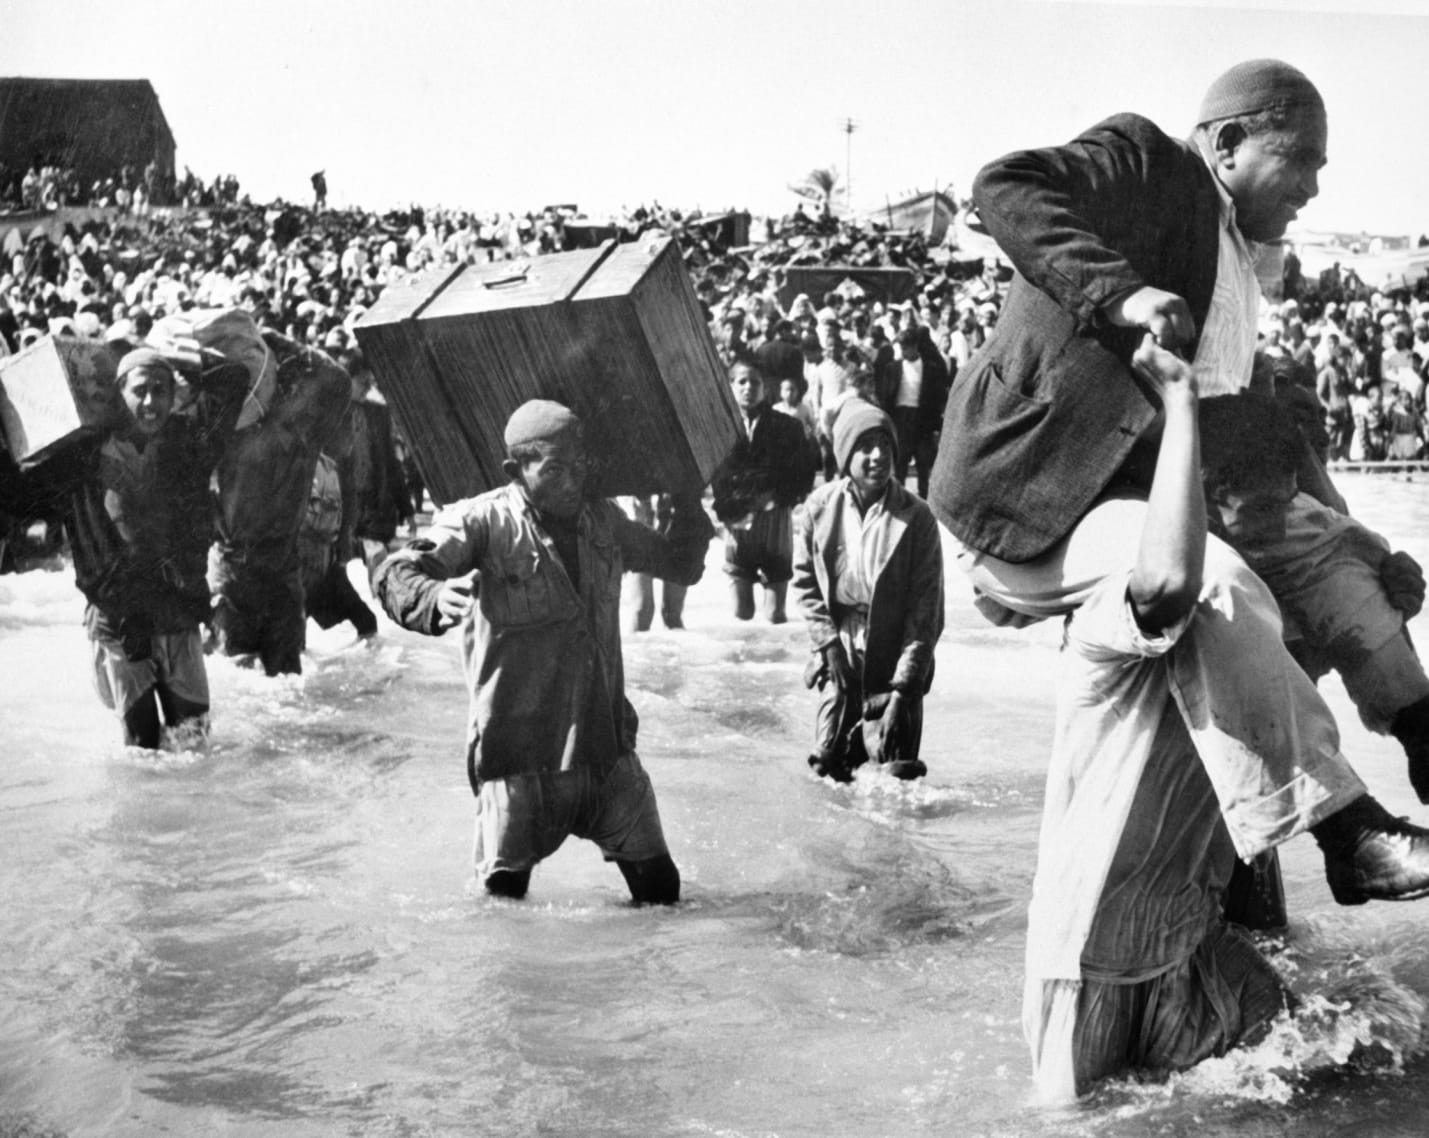 Burying the Nakba: How Israel systematically hides evidence of 1948 expulsion of Arabs